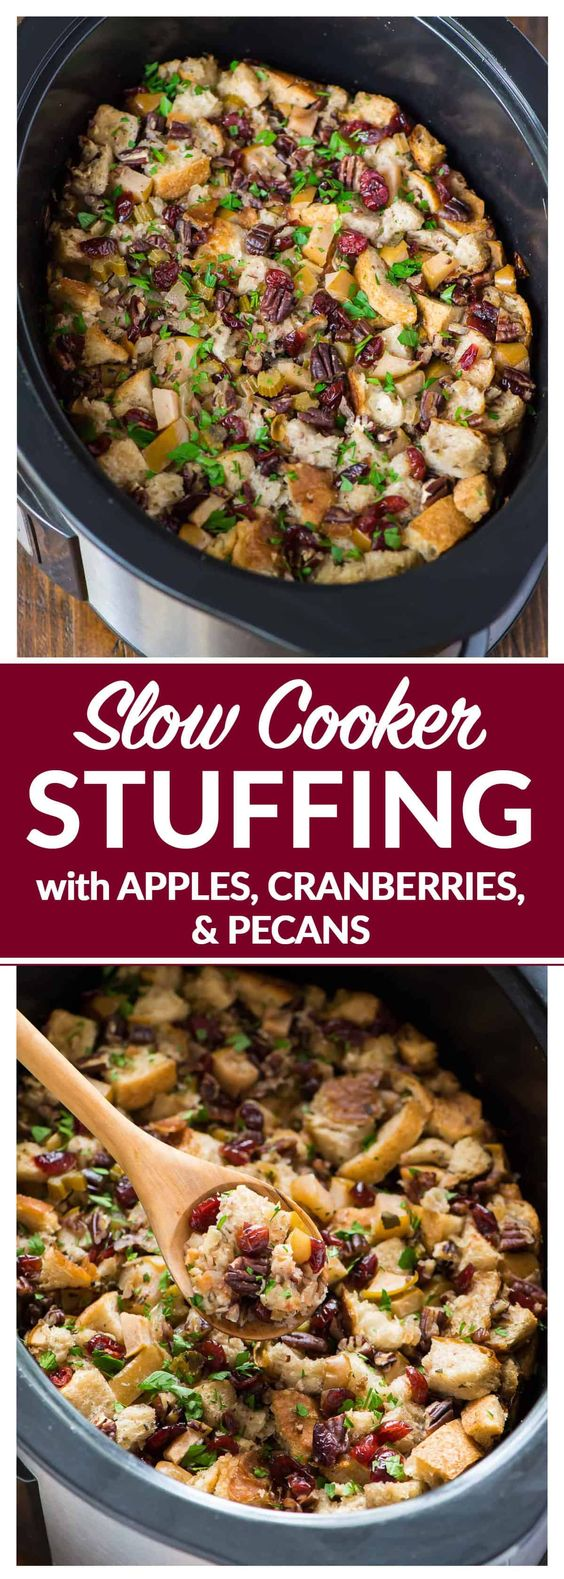 New Slow Cooker Stuffing with Apples